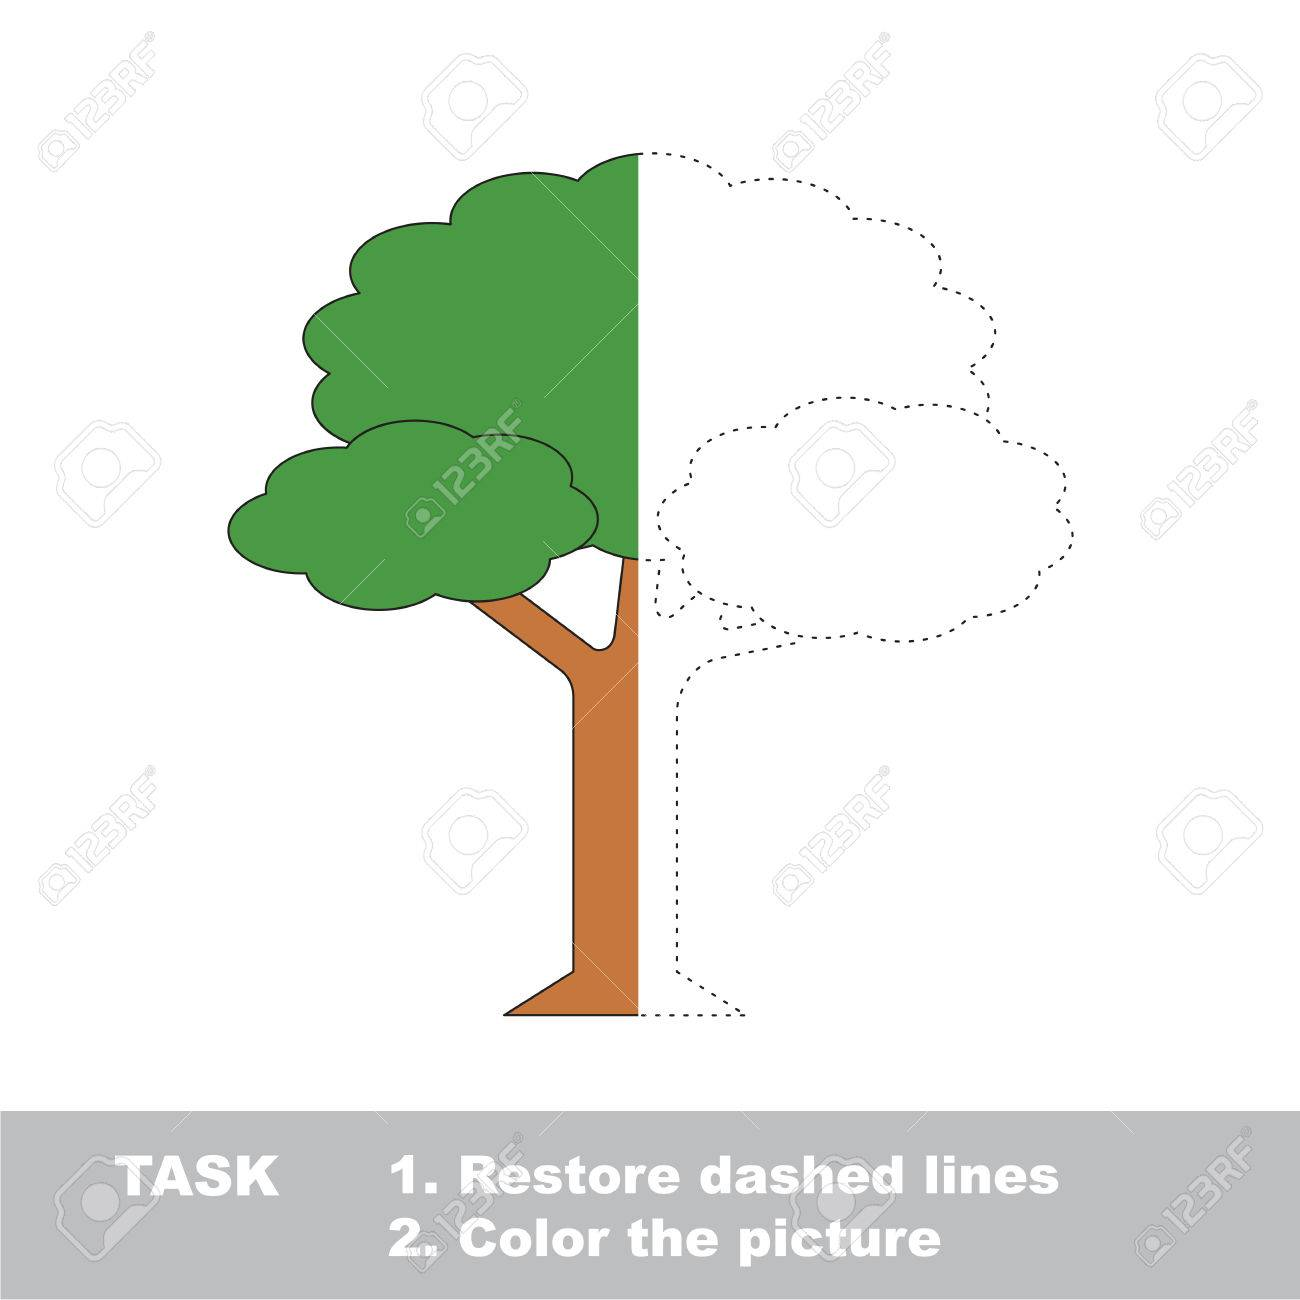 Half Tracing Game To Be Colored. Royalty Free Cliparts, Vectors, And ...